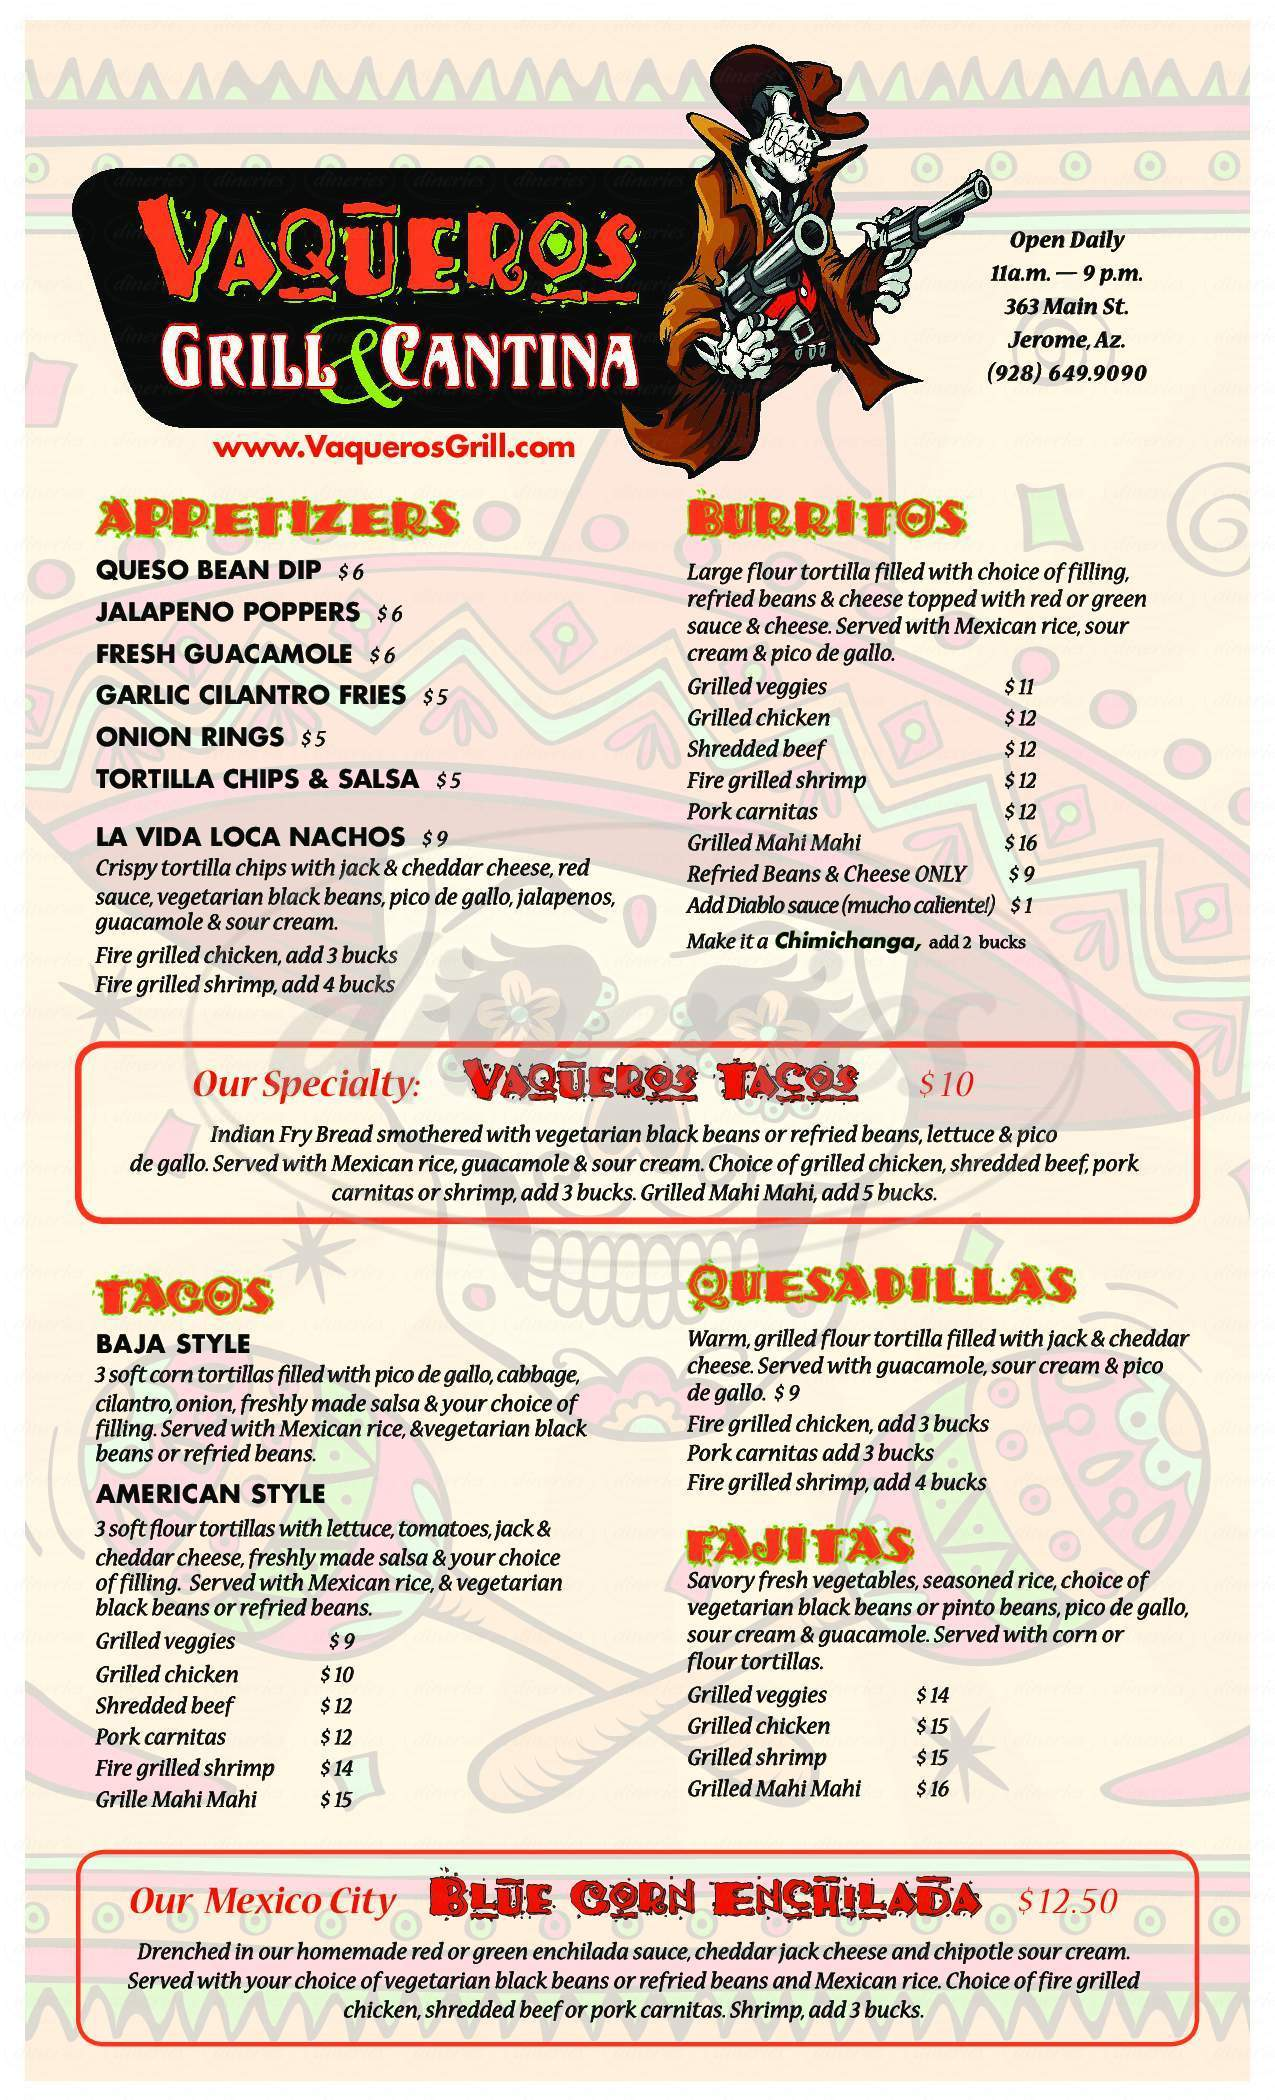 menu for Vaqueros Grill & Cantina